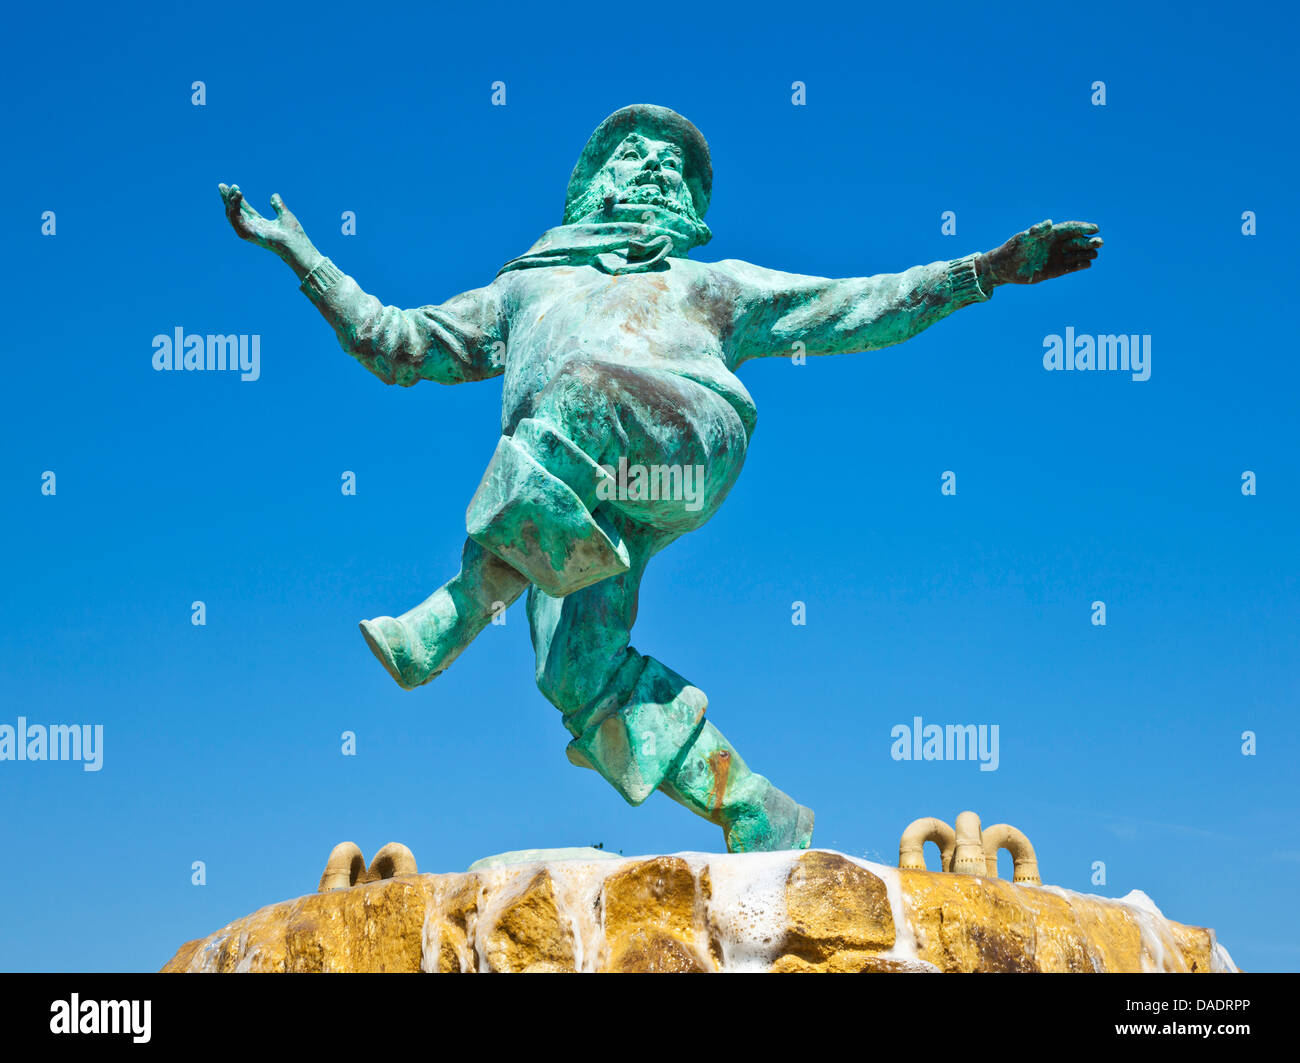 Jolly fisherman statue Skegness Tower Gardens Lincolnshire england UK GB EU Europe - Stock Image